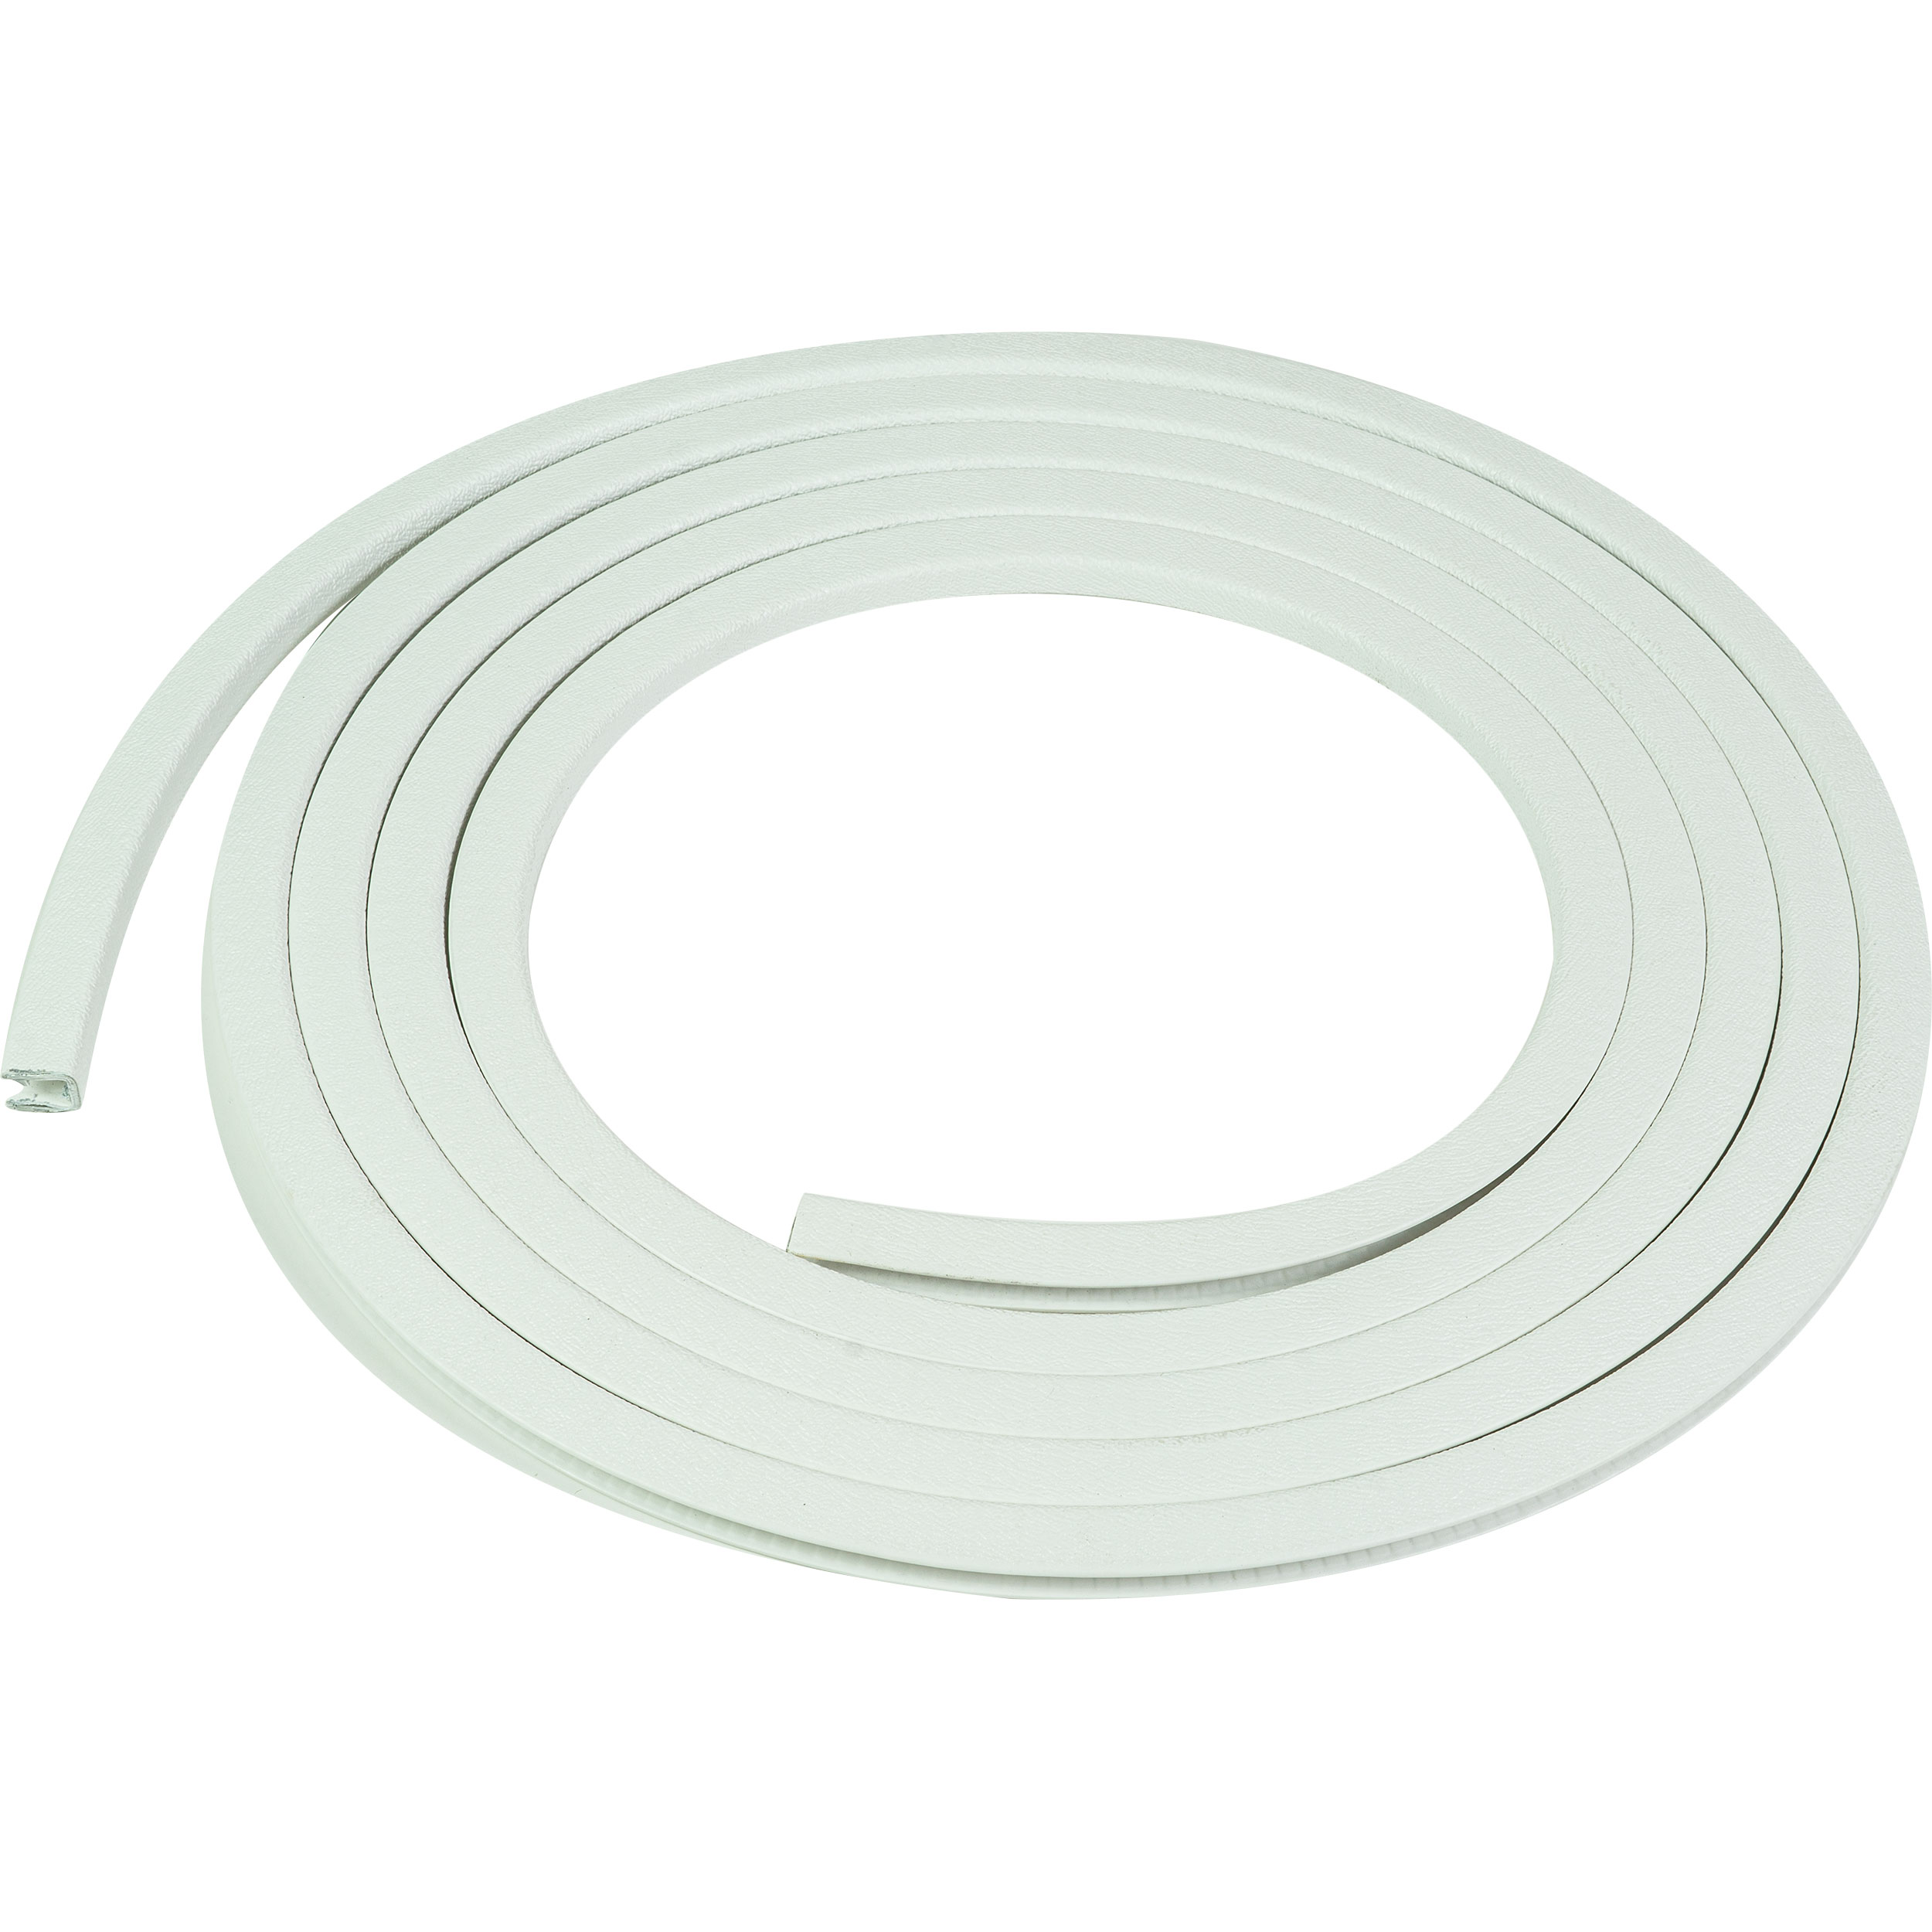 Yamaha Rubber Marching Tenor Trim (15 Feet) in White